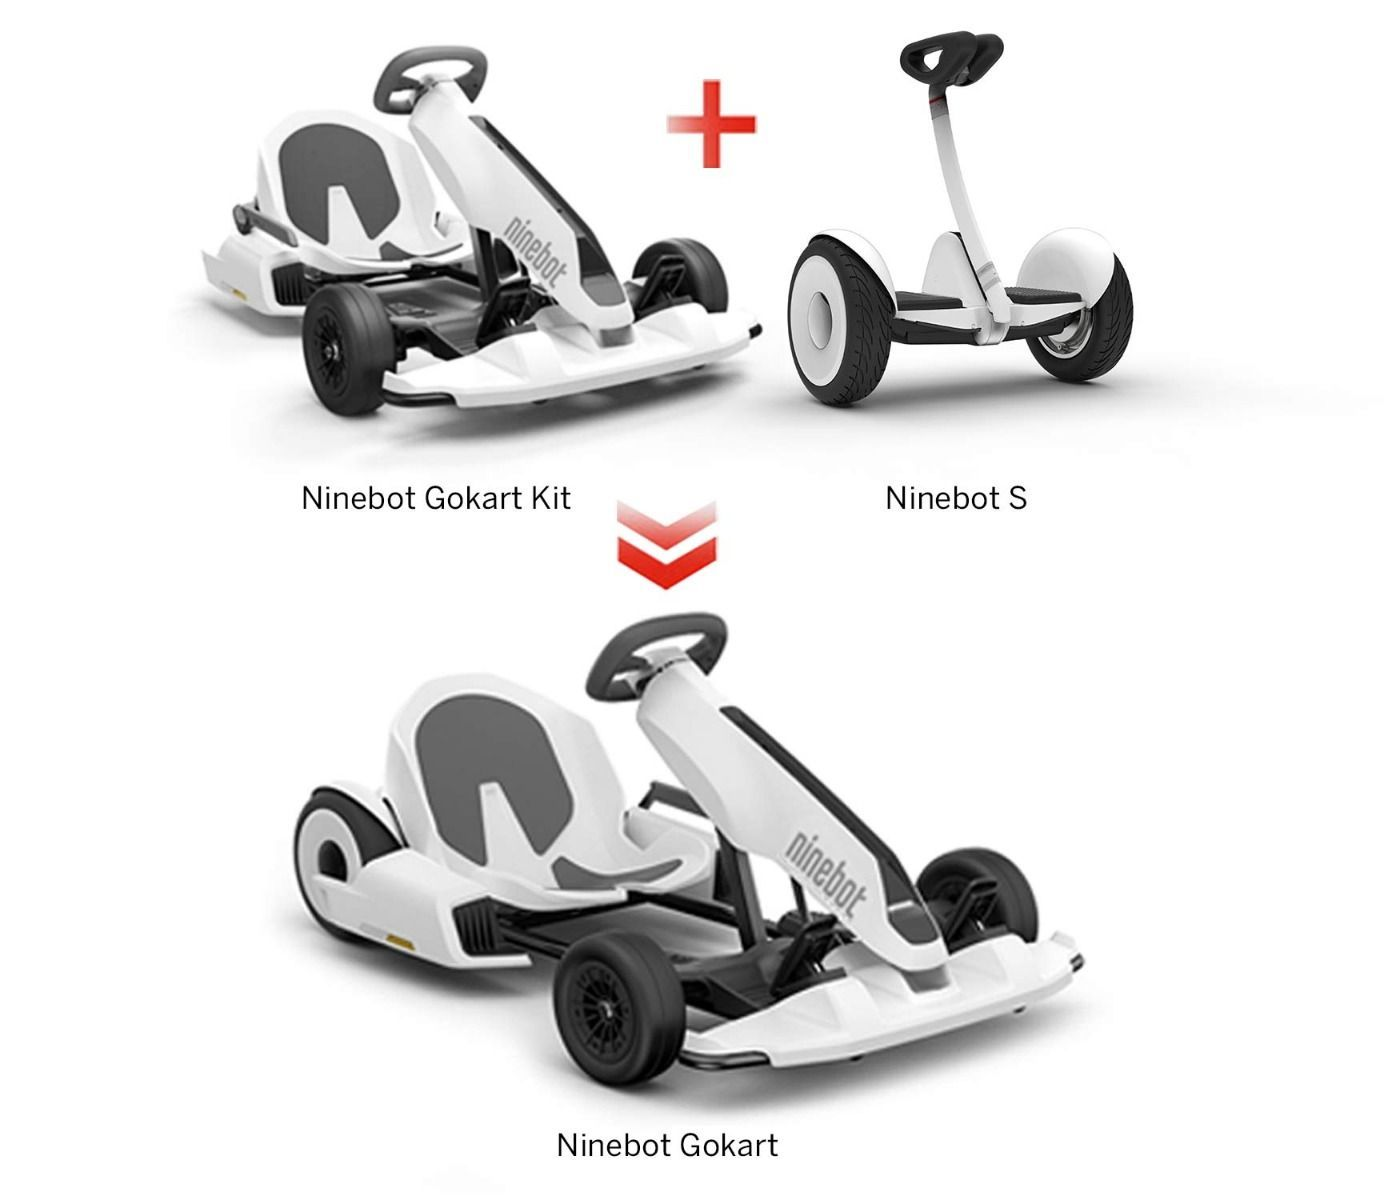 Ninebot Gokart kit review 2020